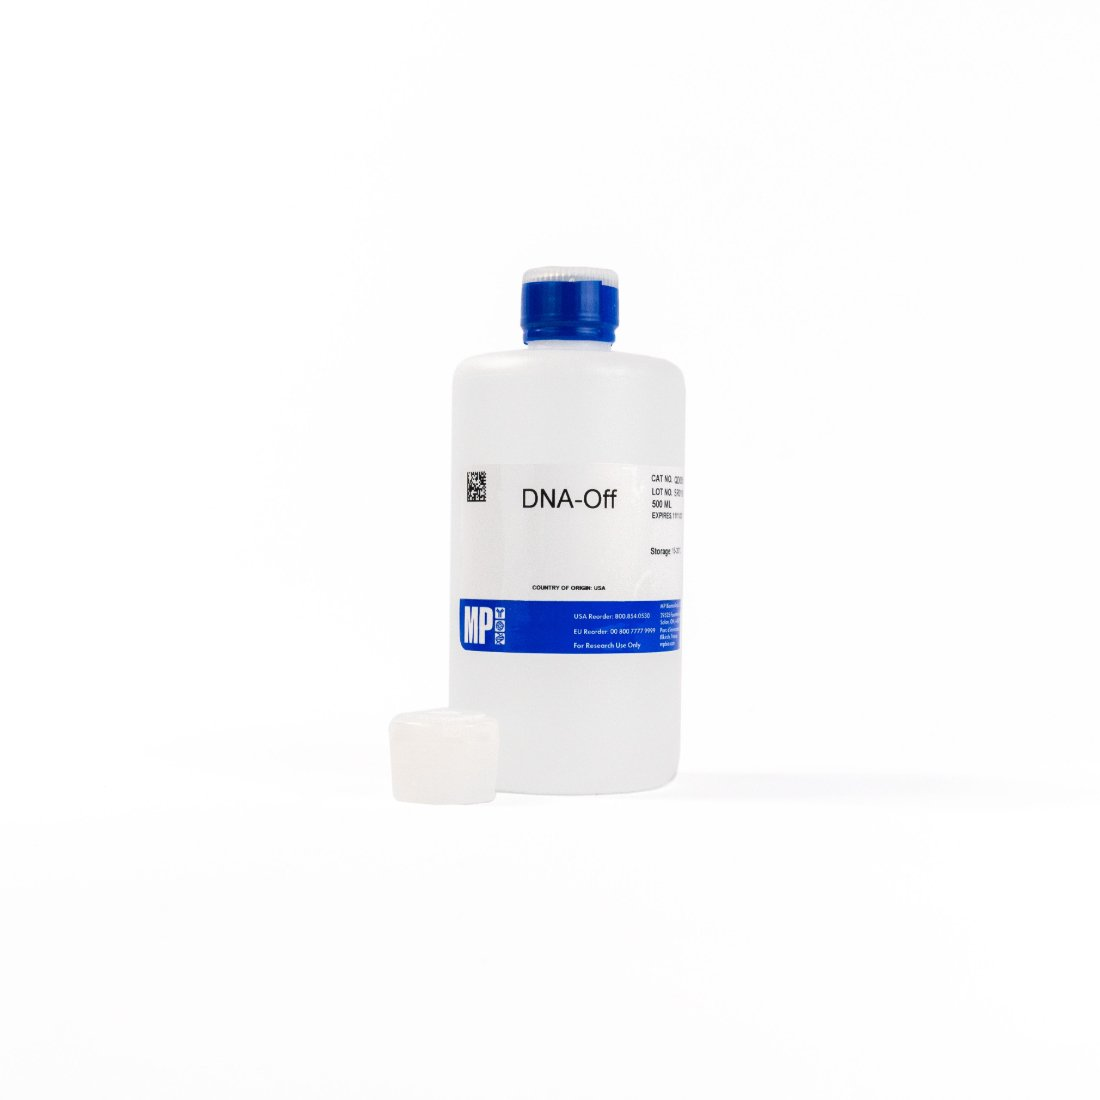 DNA OFF DNA removal agent